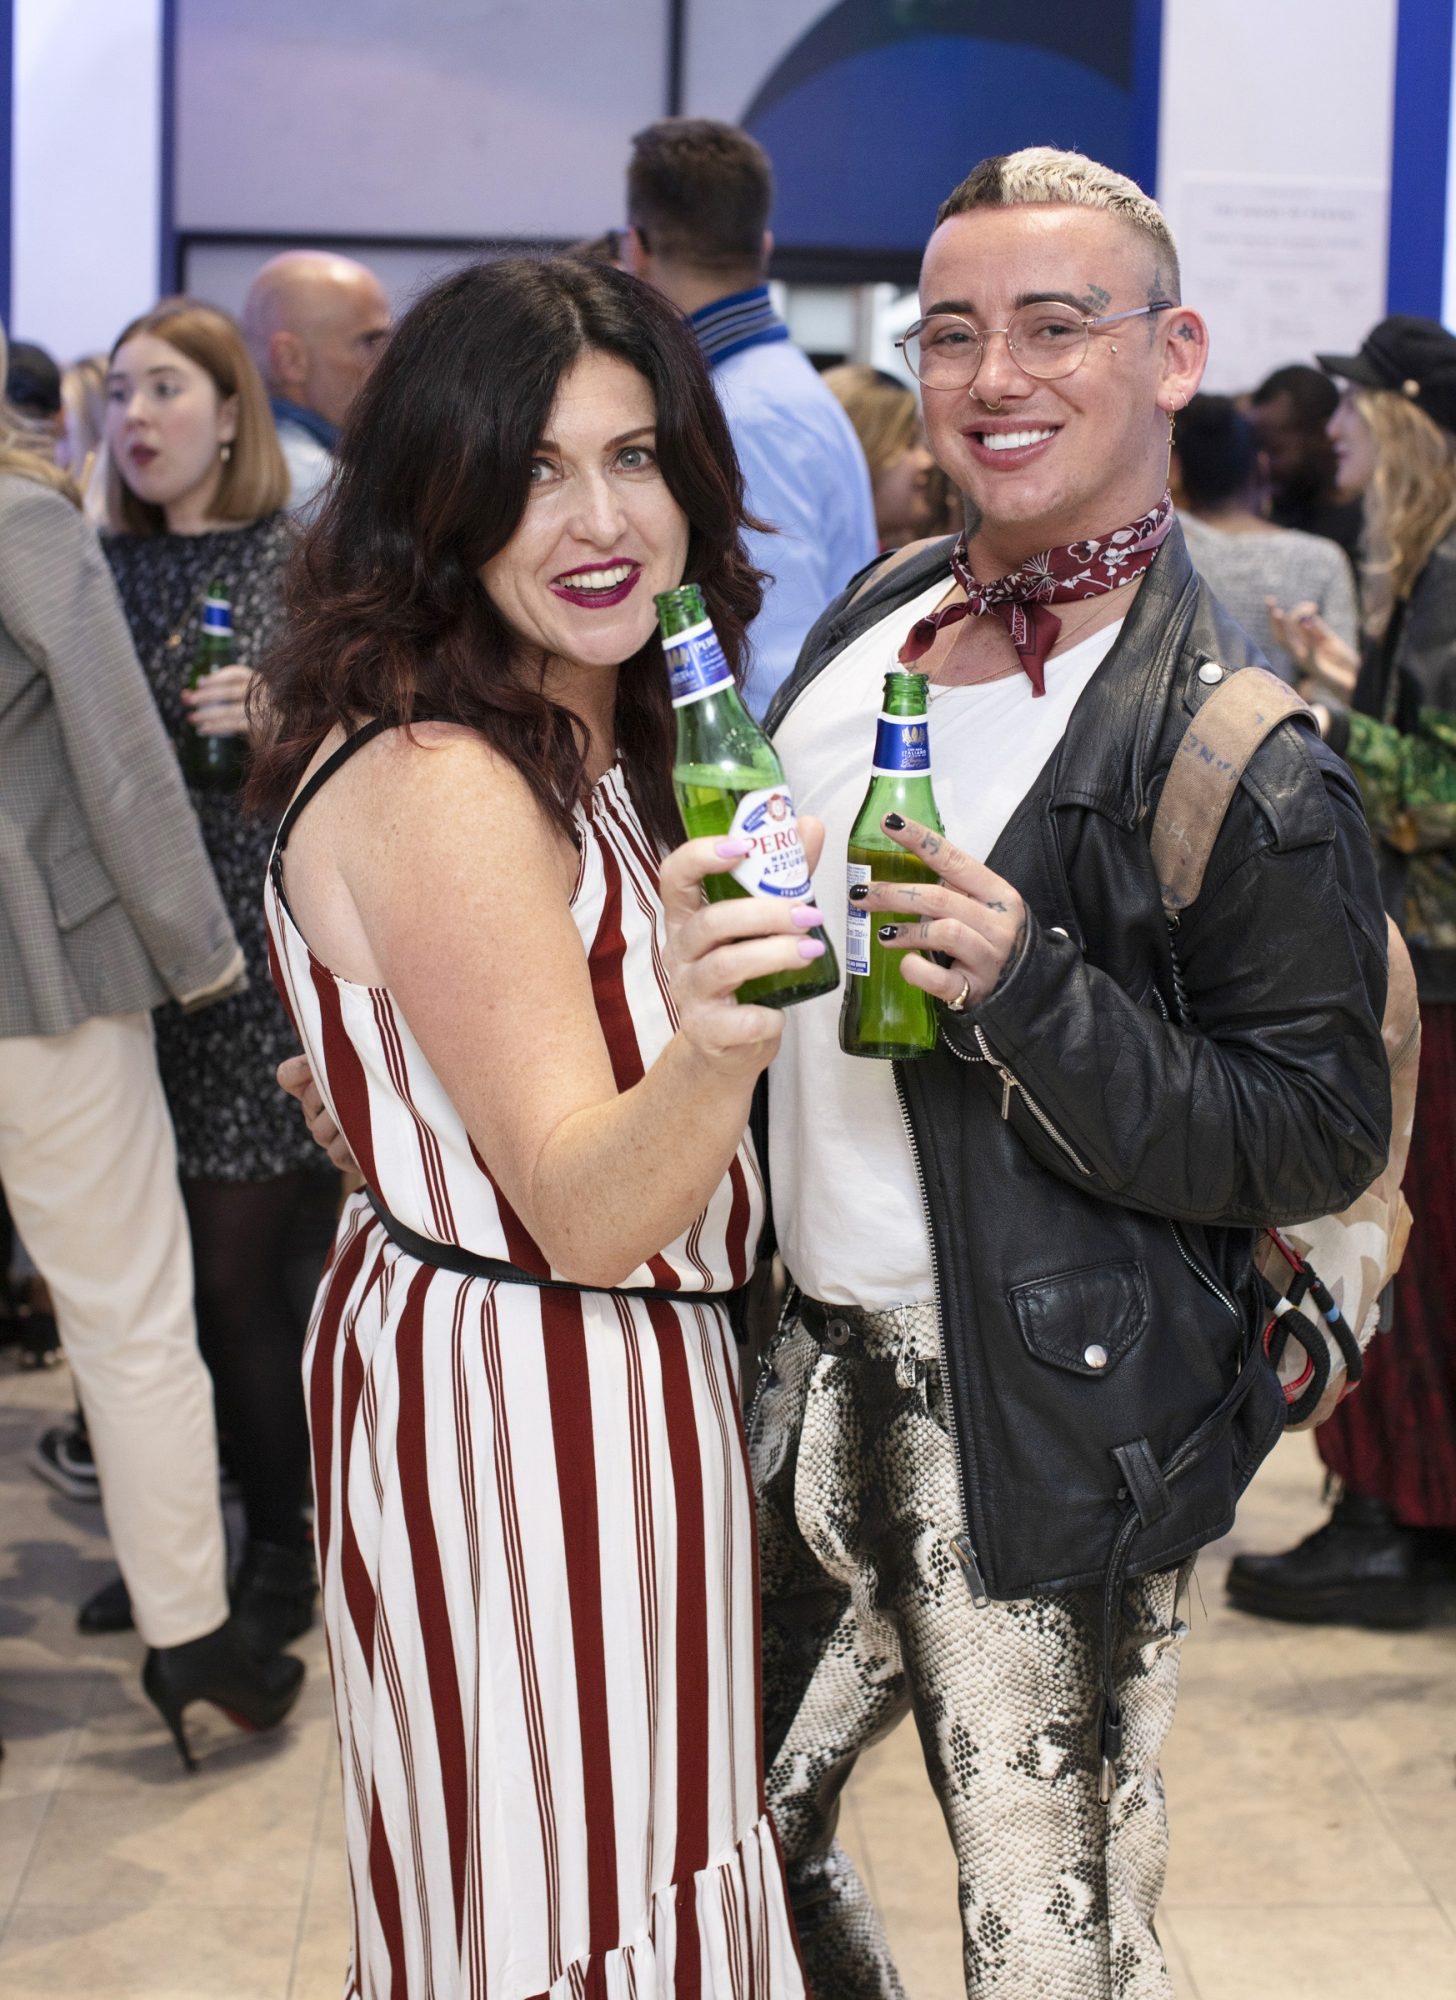 Hillary O'Reilly & Jordan Dunbar pictured at the launch of The House of Peroni, which is open at the RHA in Dublin until Sunday, 1st September 2019. This year's residency sees the RHA transformed into a stylish Peroni inspired experience, filled with food, drink and design. www.thehouseofperoni.com Photo: Anthony Woods.